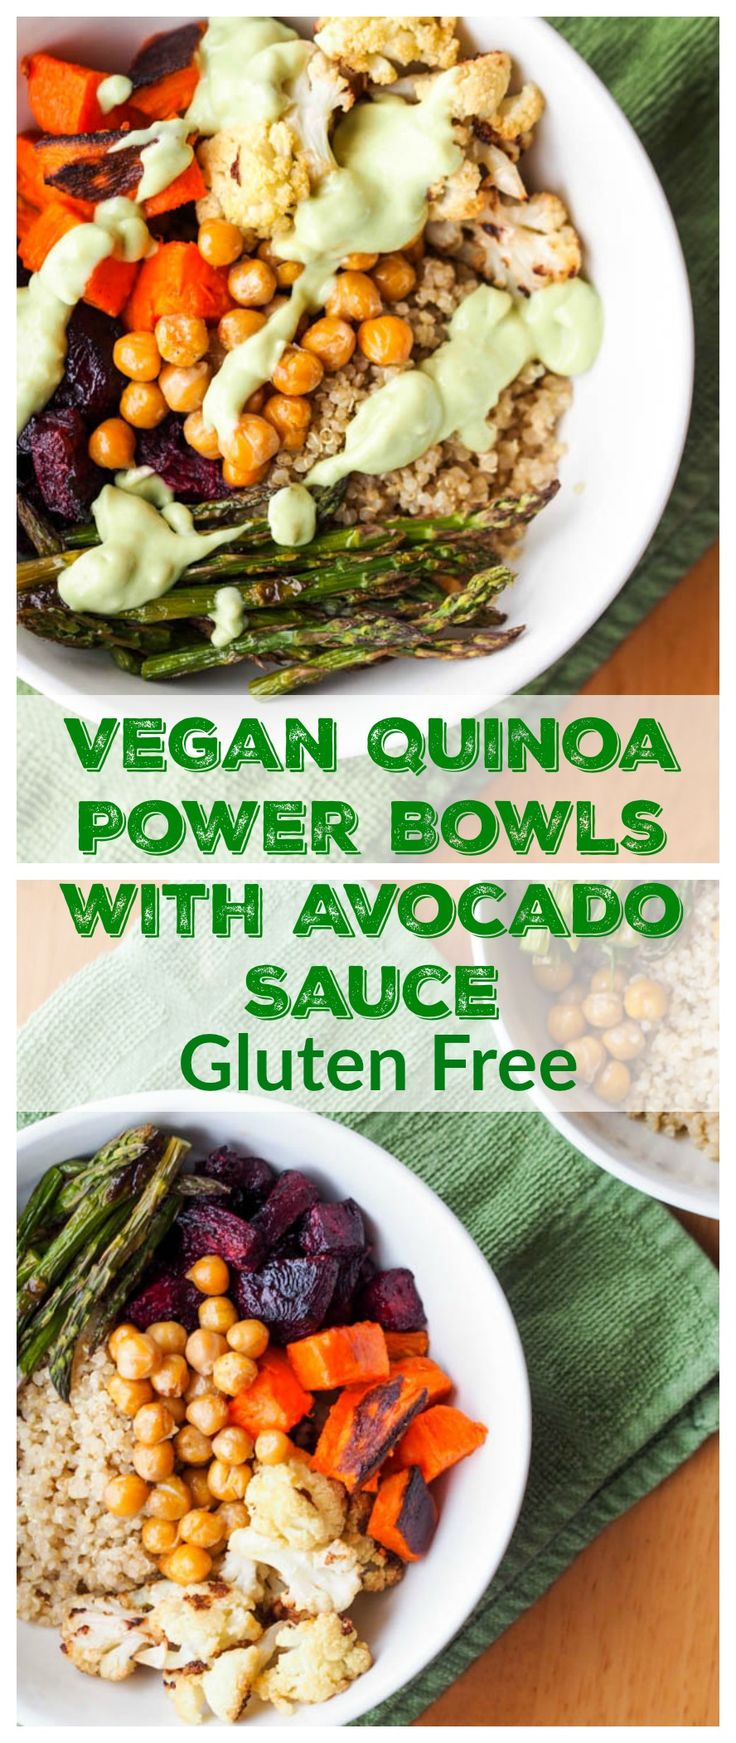 Vegan Quinoa Power Bowls with Roasted Veggies and Avocado Sauce are made with oven roasted beets, sweet potatoes, cauliflower, asparagus and pan toasted chickpeas, served over a fluffy bed of quinoa and drizzled with a creamy and flavorful avocado dressing. The ultimate feel good meal.  Gluten Free too.